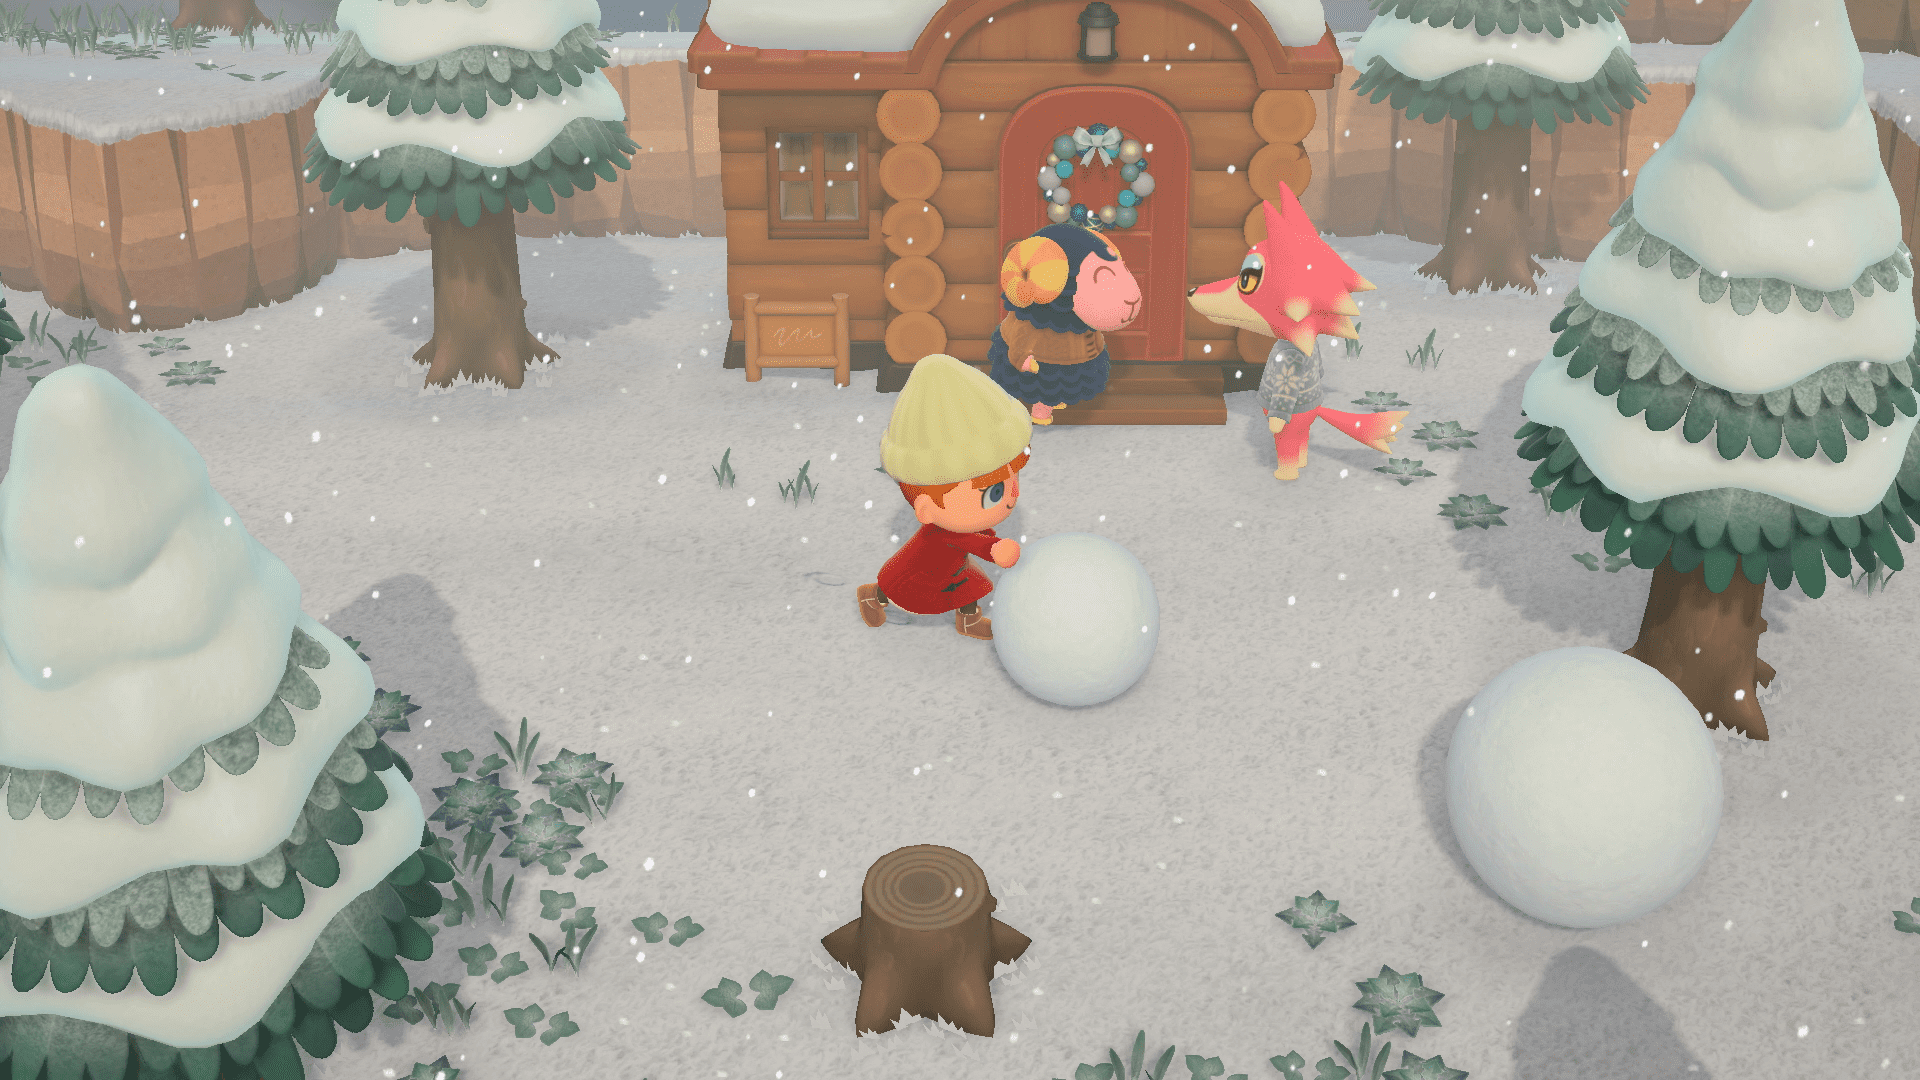 En train de faire une boule de neige, Animal Crossing : New Horizons